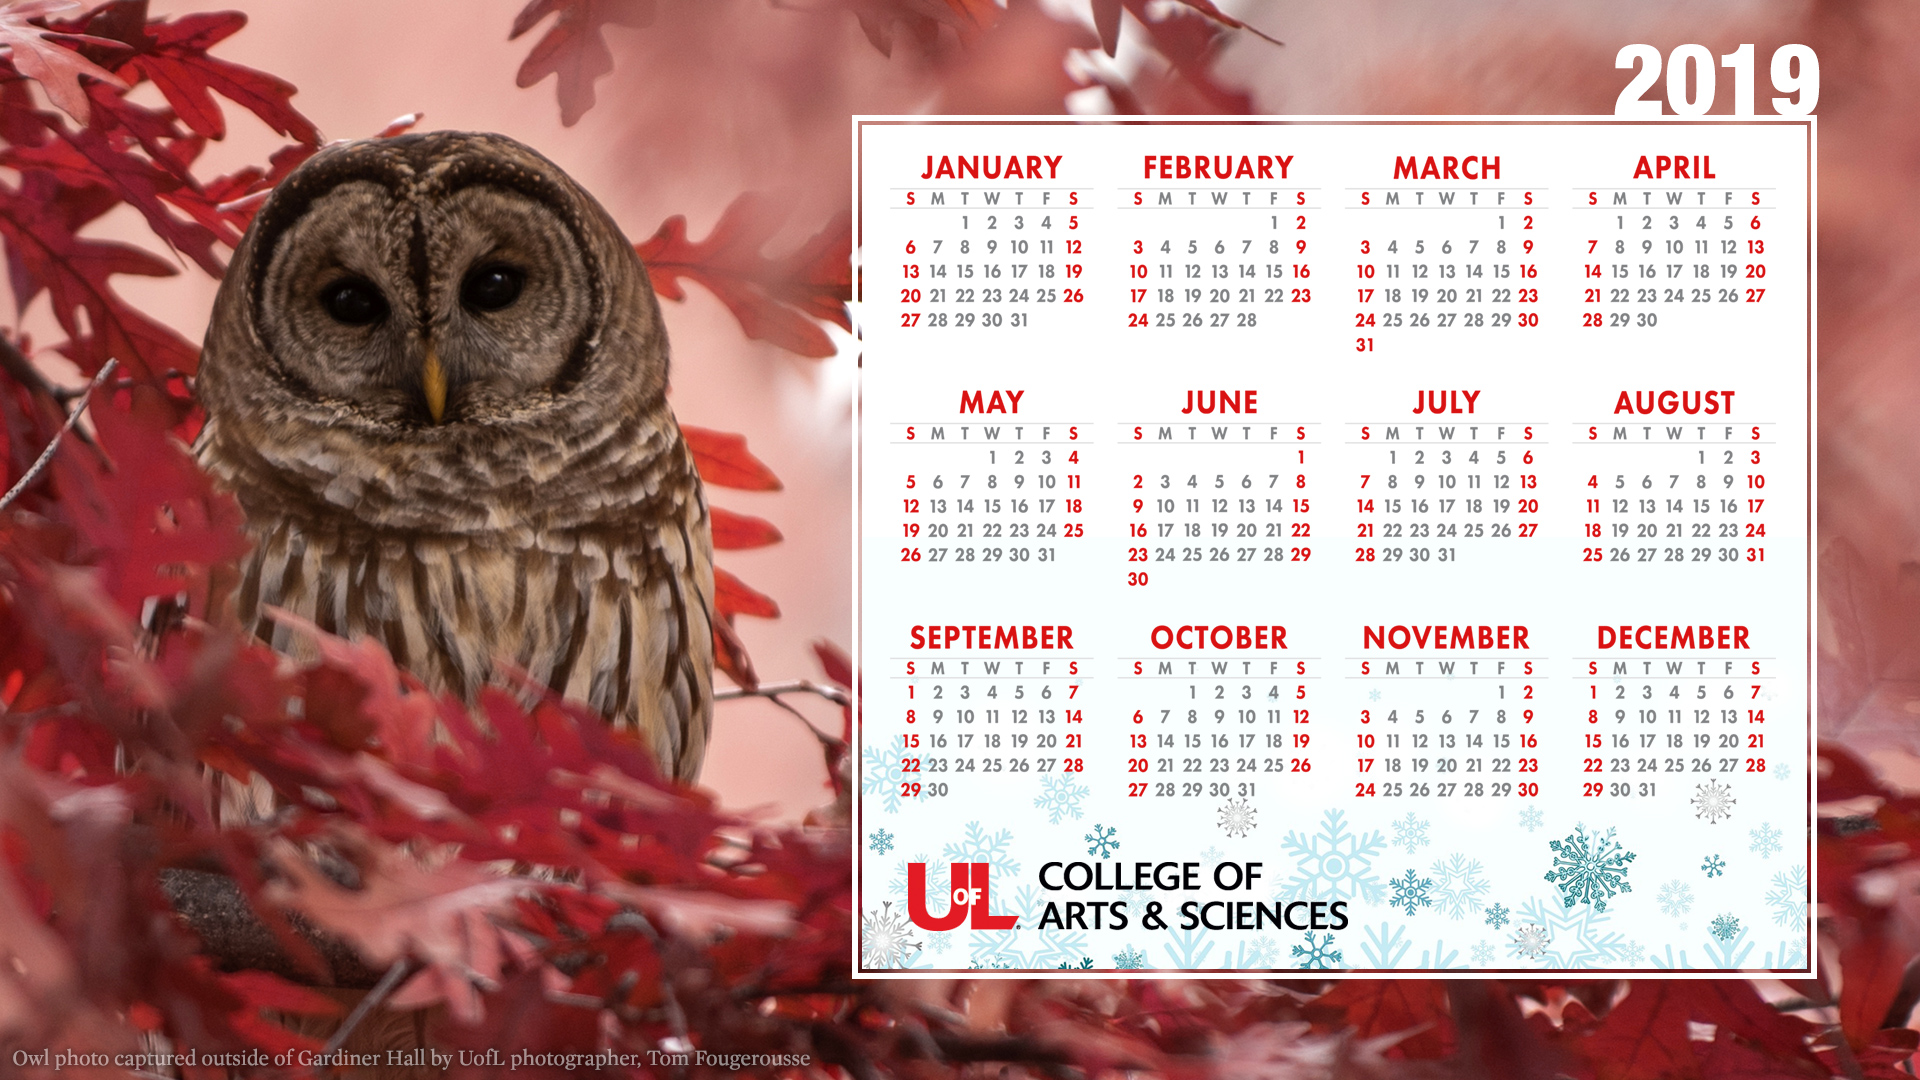 Uofl Calendar 2019 2019 Holiday Calendar Desktop Wallpaper — College of Arts & Sciences